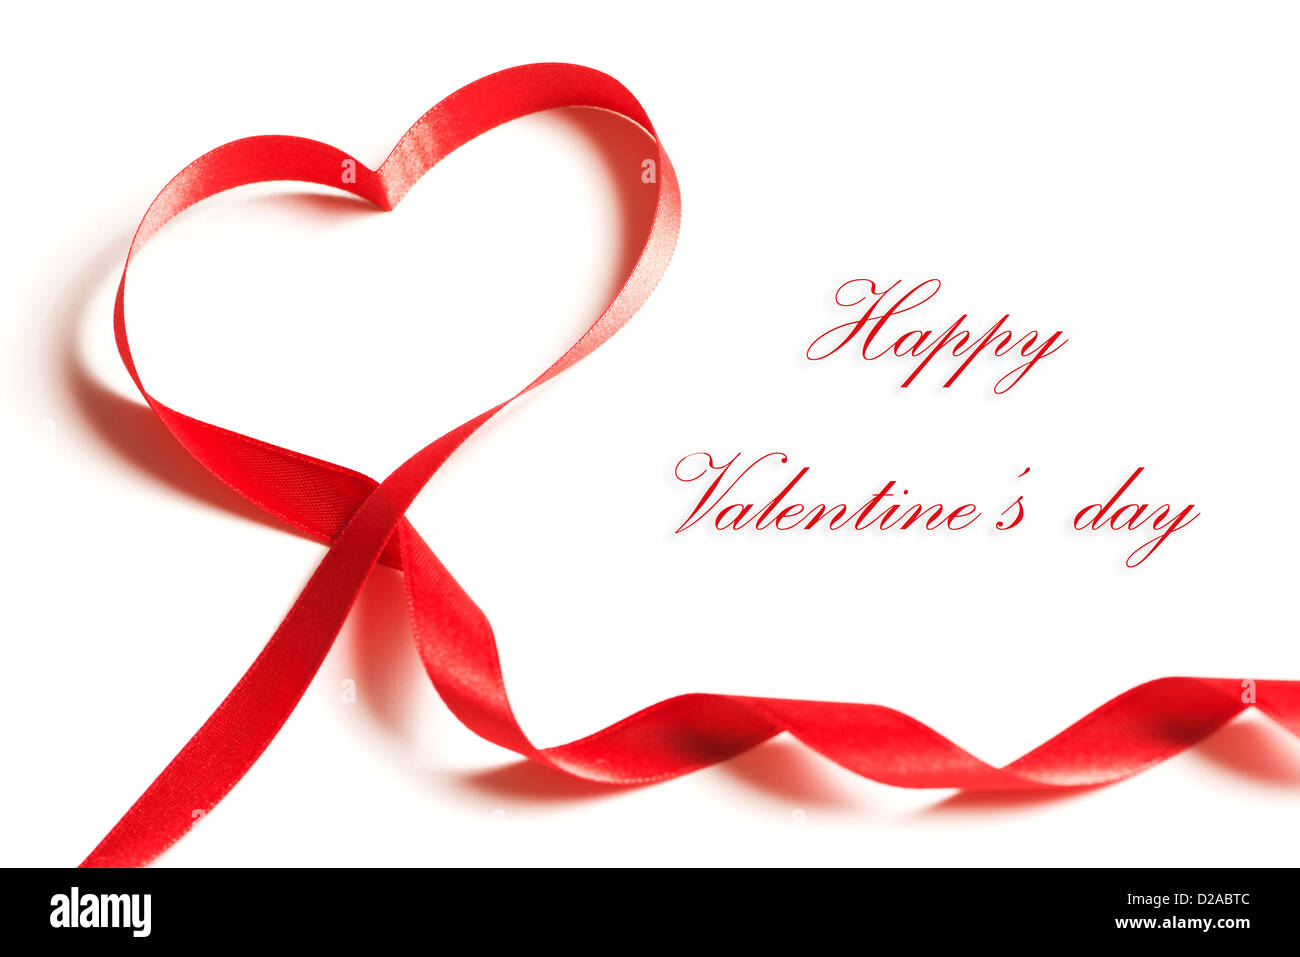 Valentine's day card - heart made of ribbon on white background - Stock Image